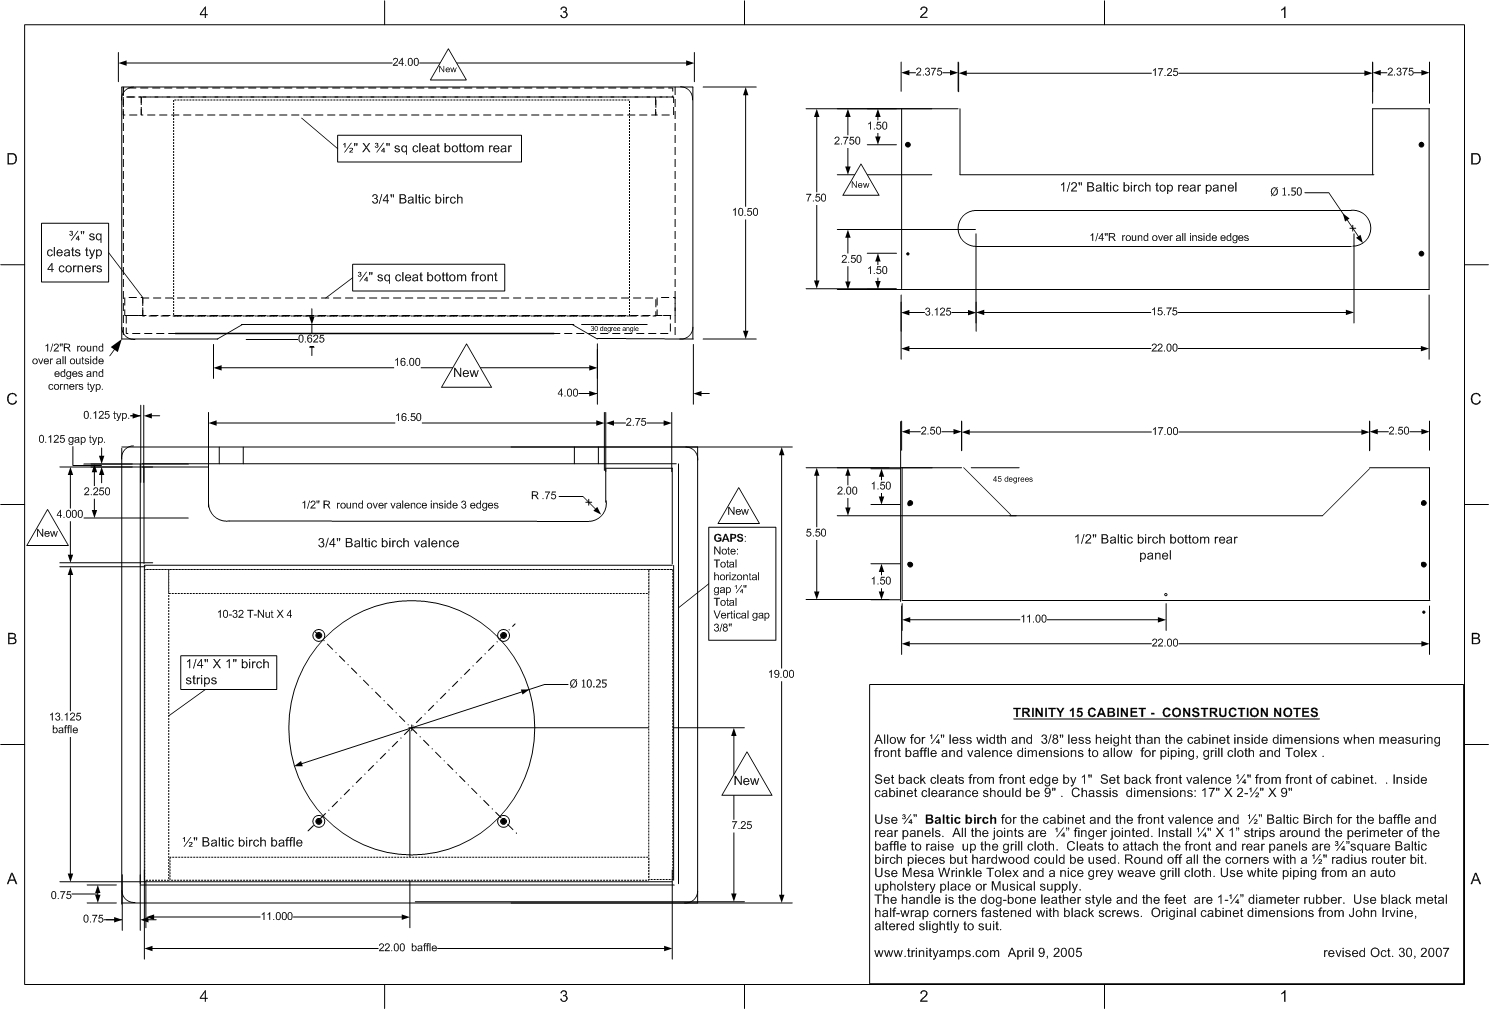 guitar cabinet plans | Centerfordemocracy.org